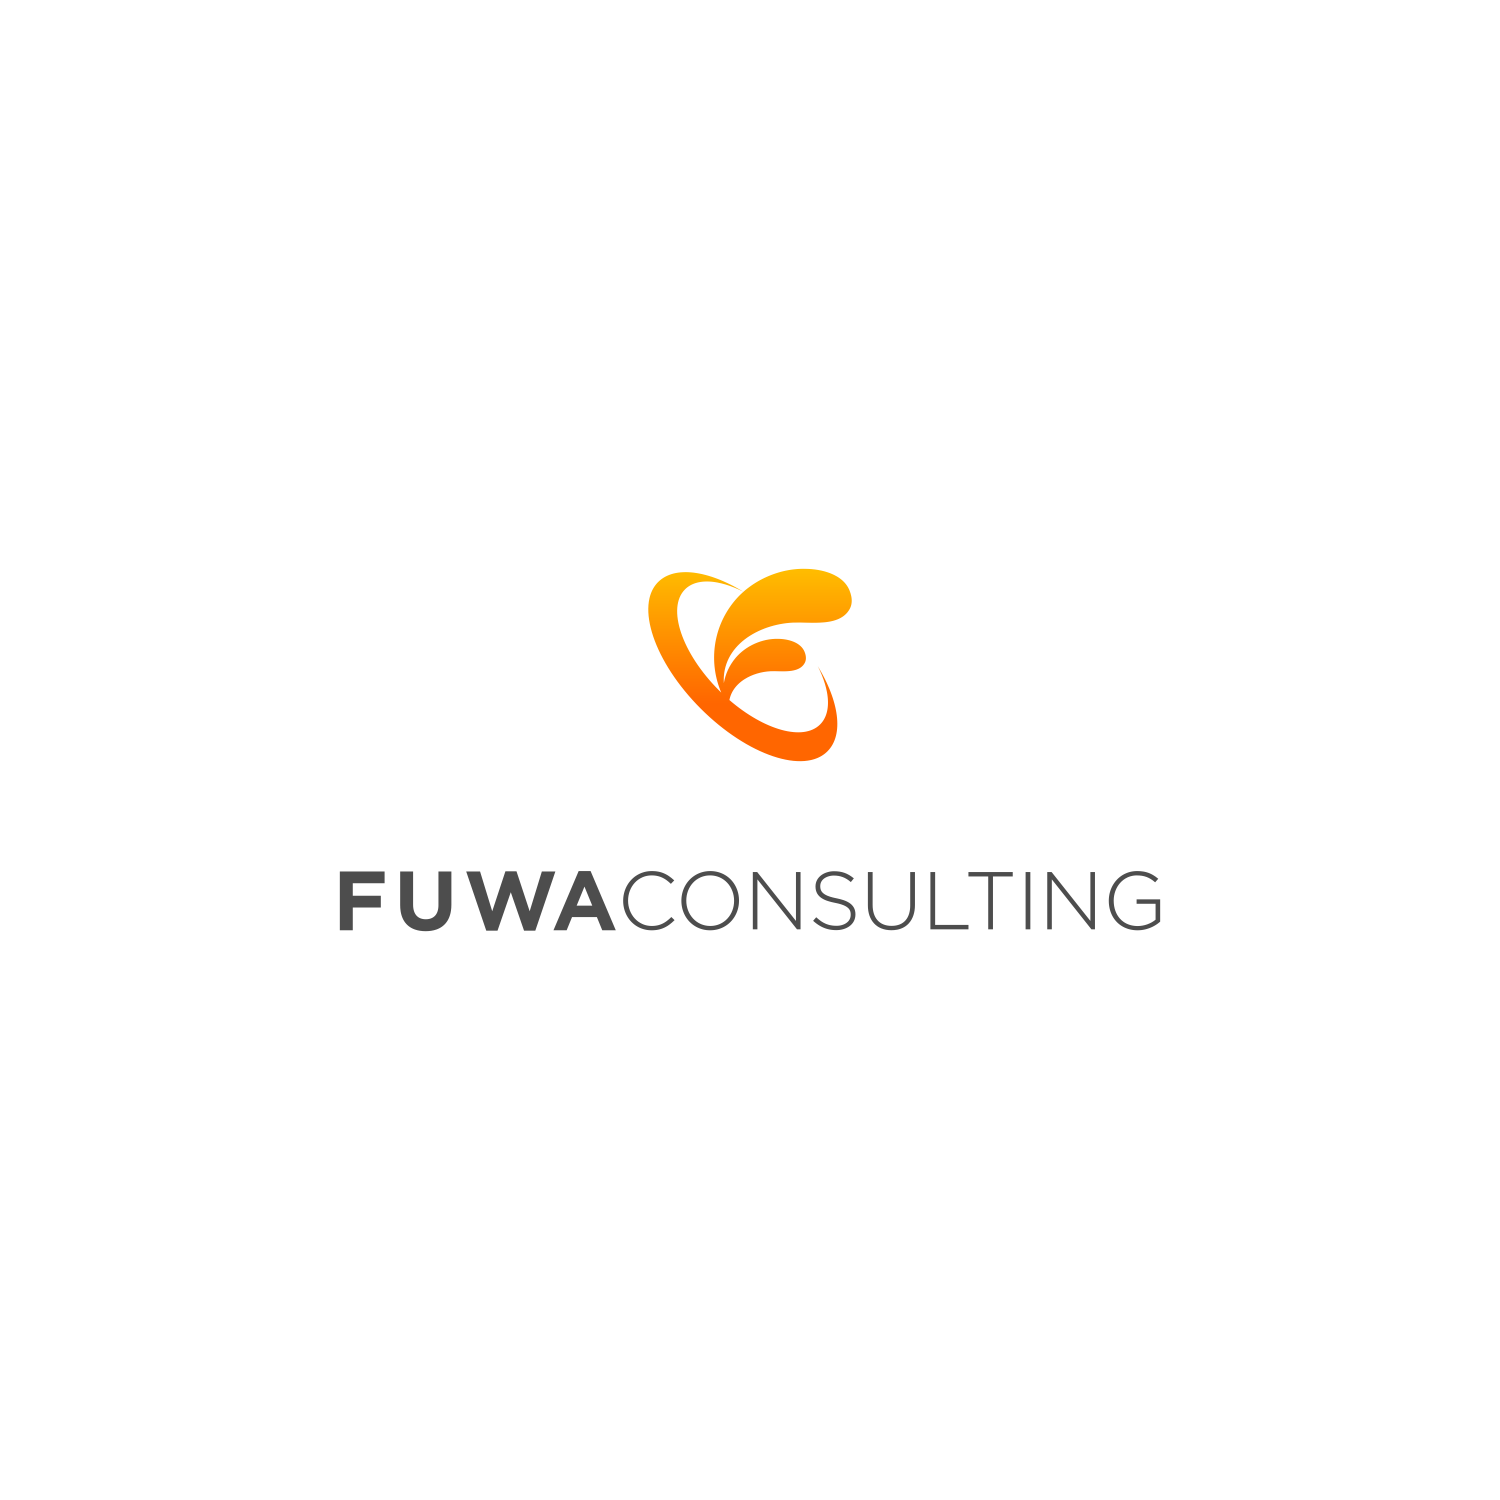 Design a company logo for an international business consulting firm